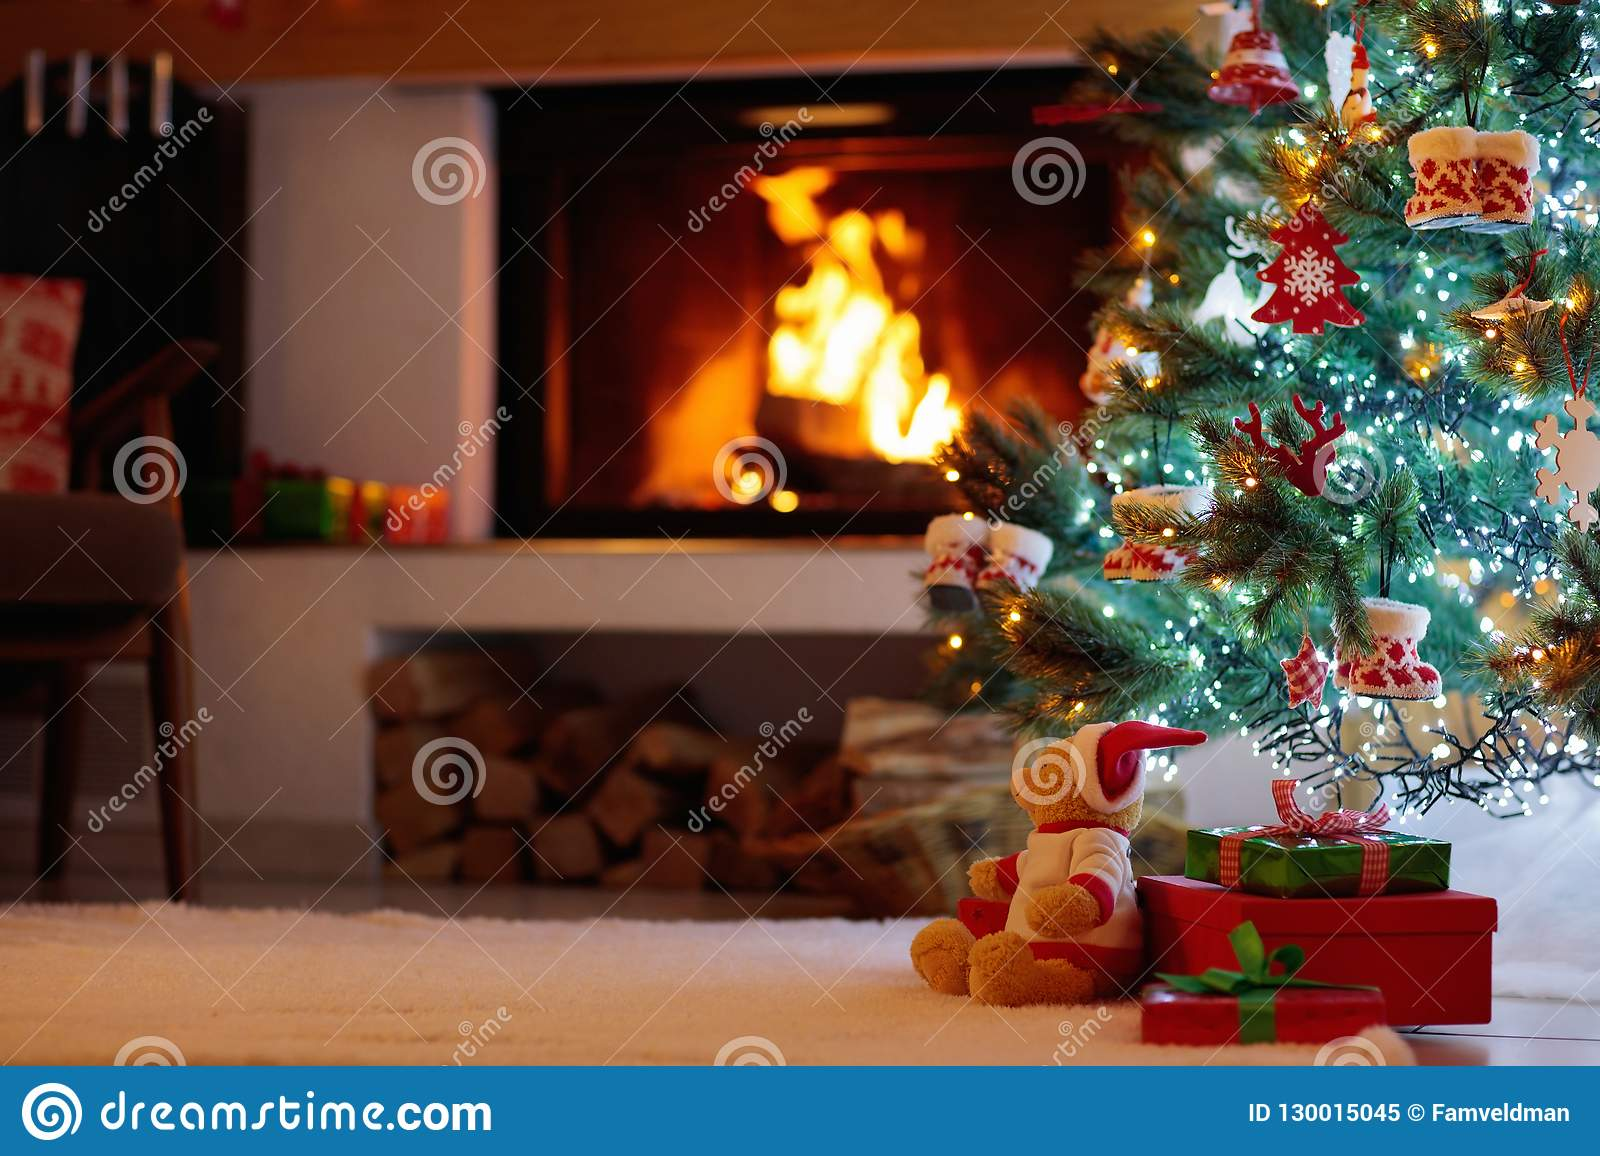 Christmas Tree With Presents At Fire Place Stock Image